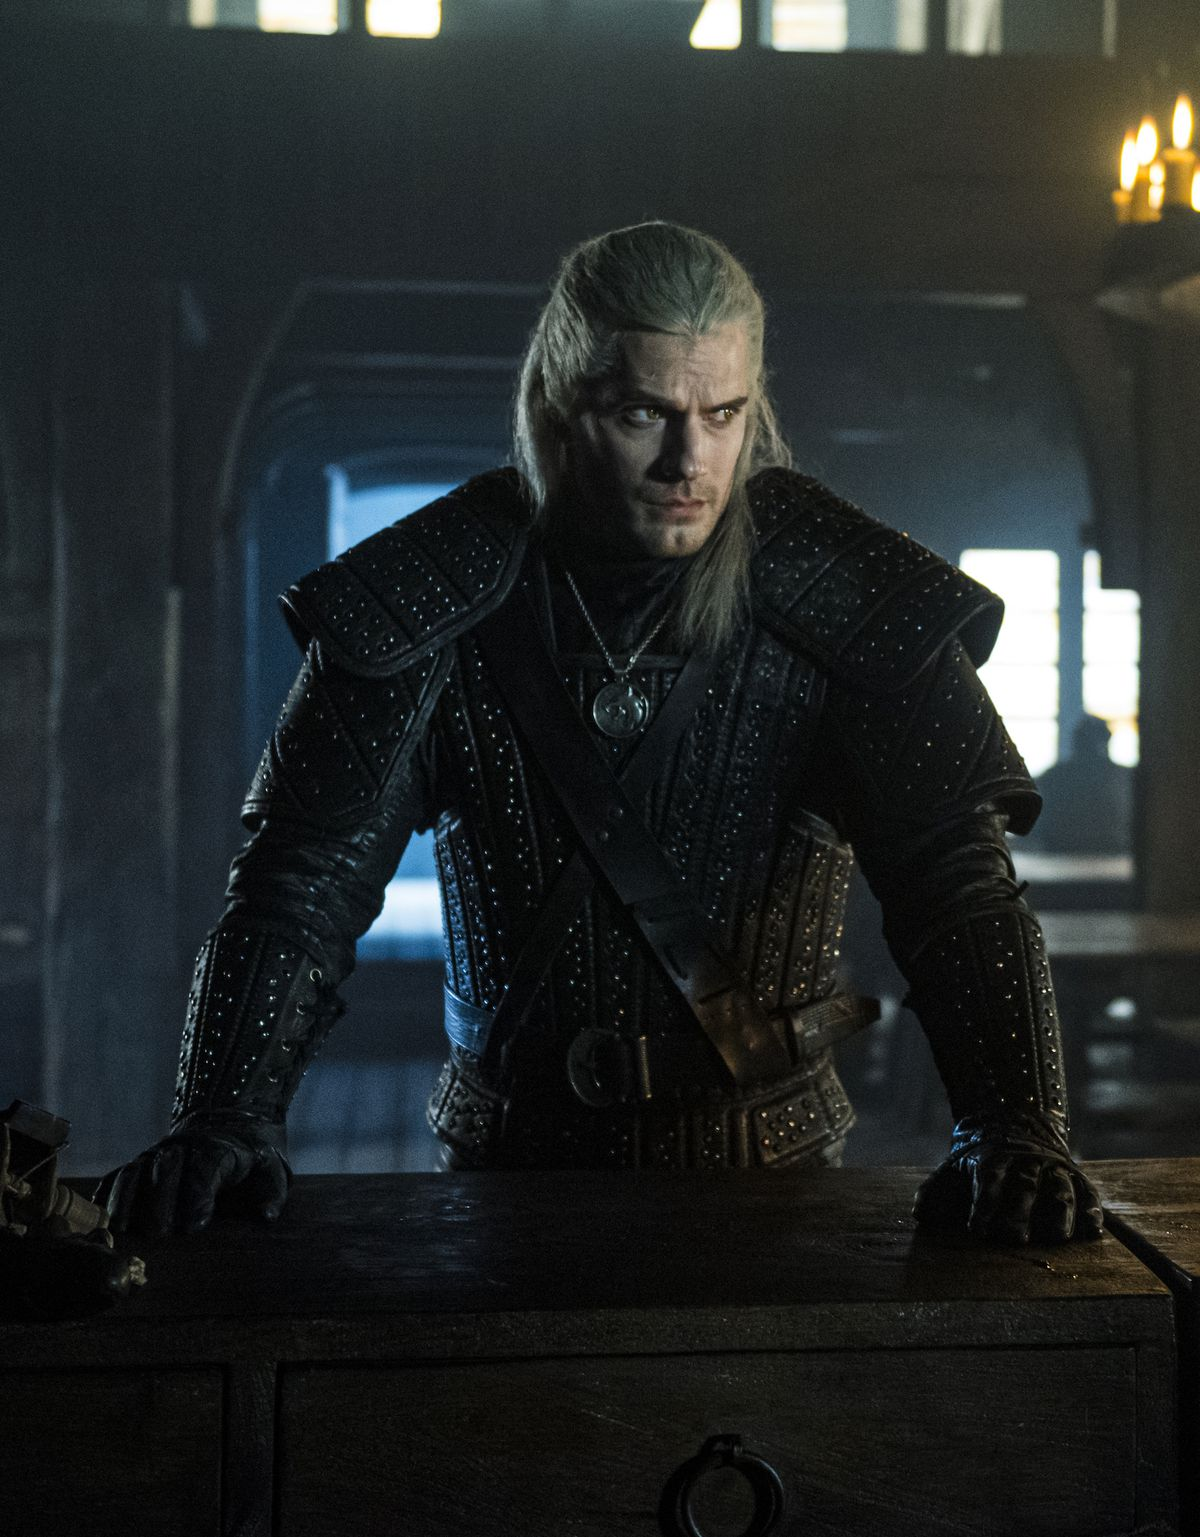 geralt stands with his hands on a table